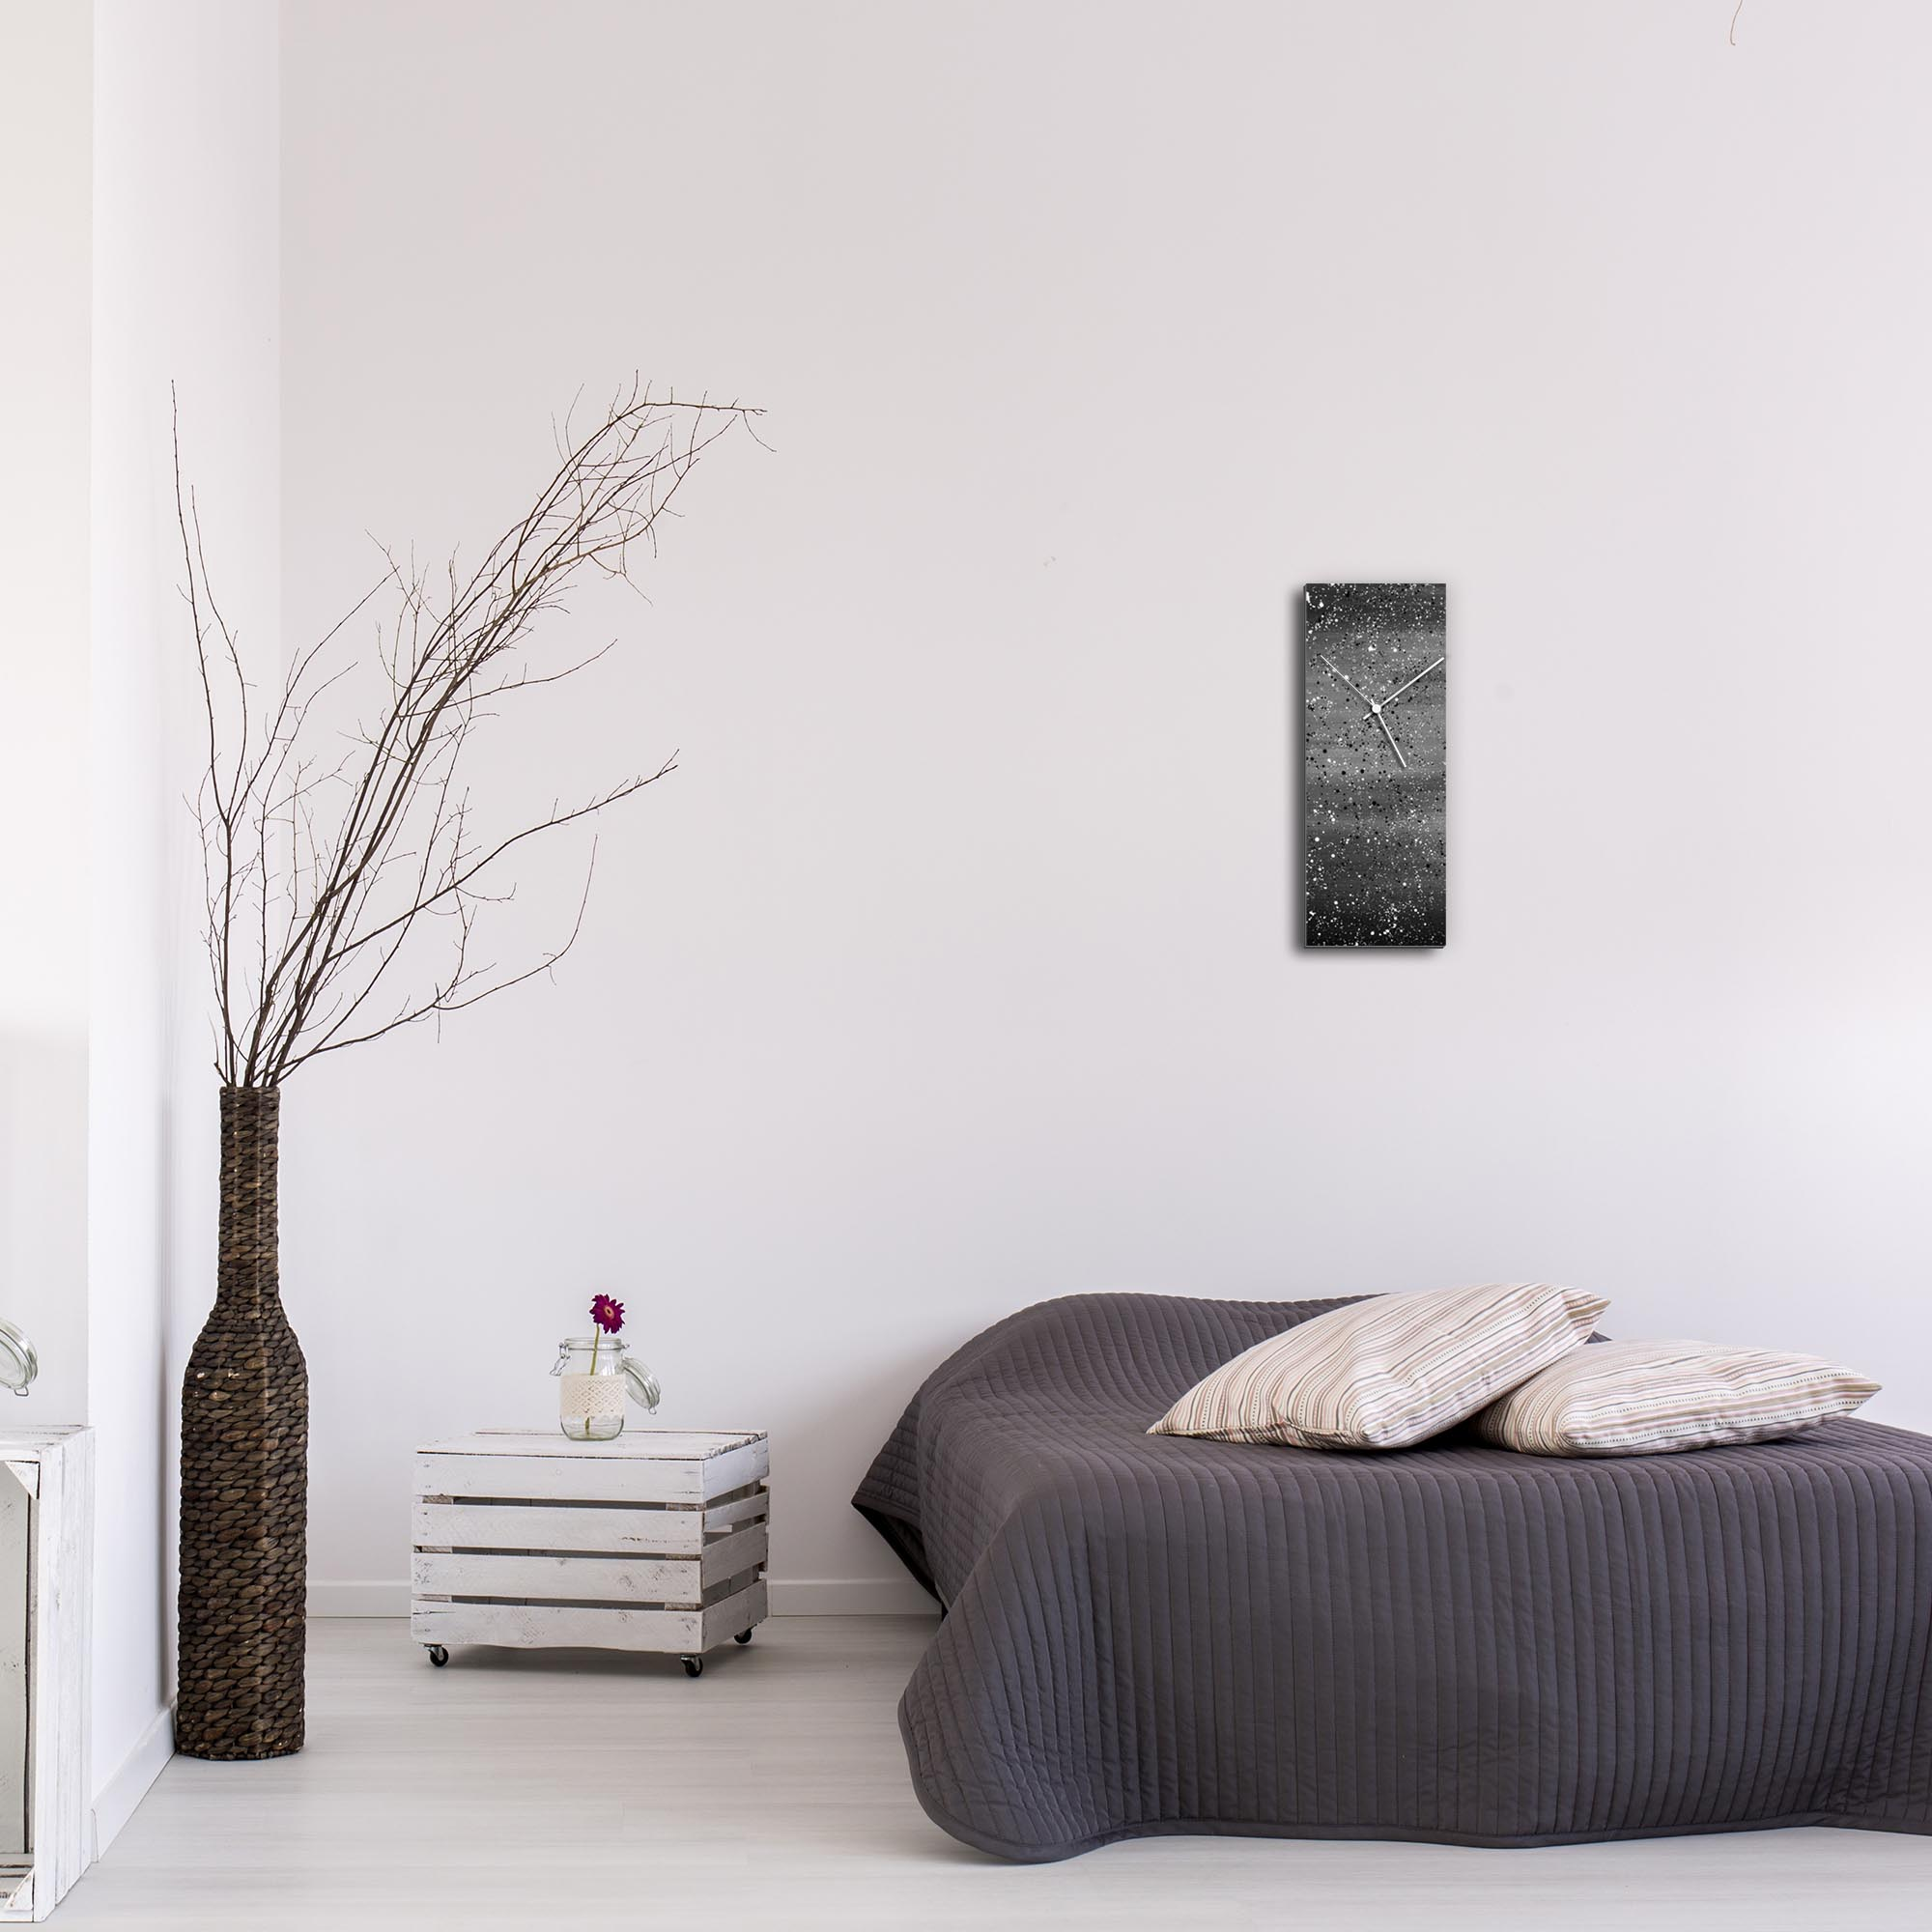 Black Flecked Clock by Mendo Vasilevski - Urban Abstract Home Decor - Lifestyle View